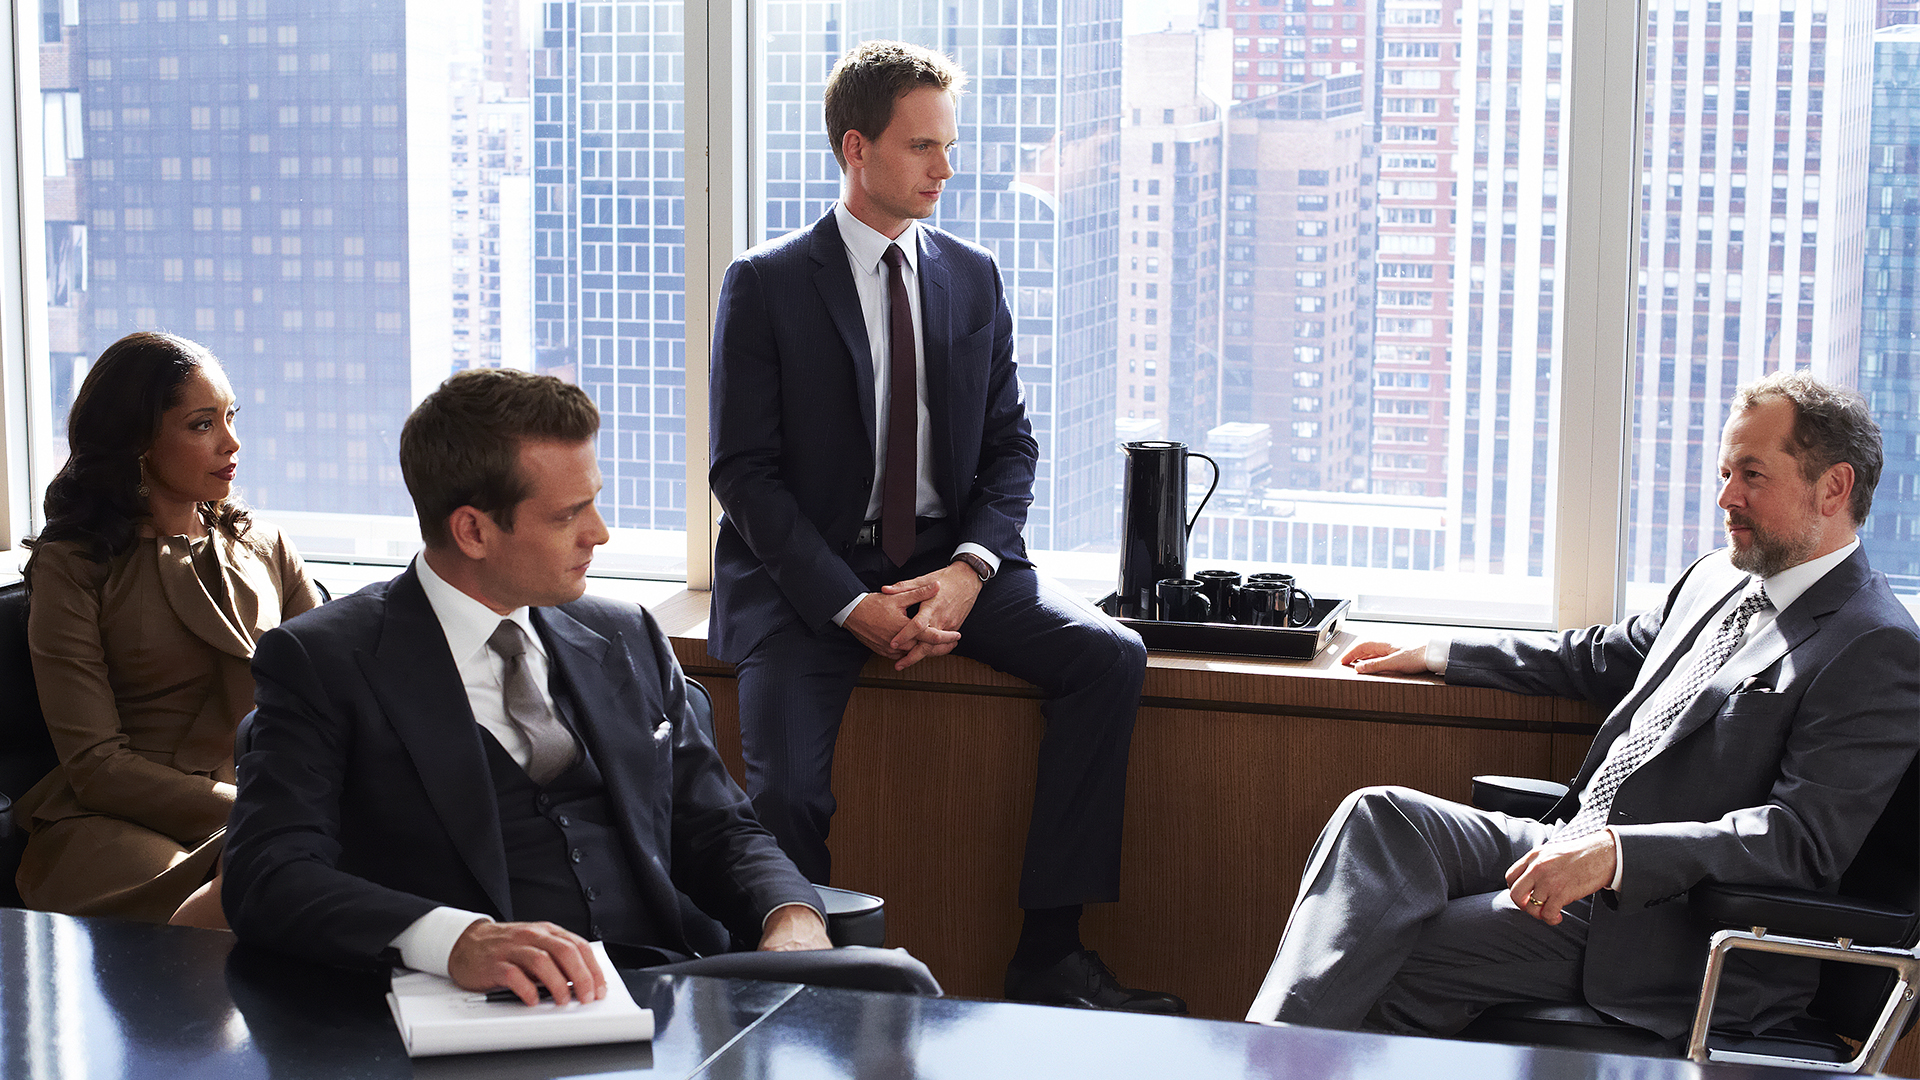 Photo of 4 Reasons Why the Latest Season of Suits became its Best